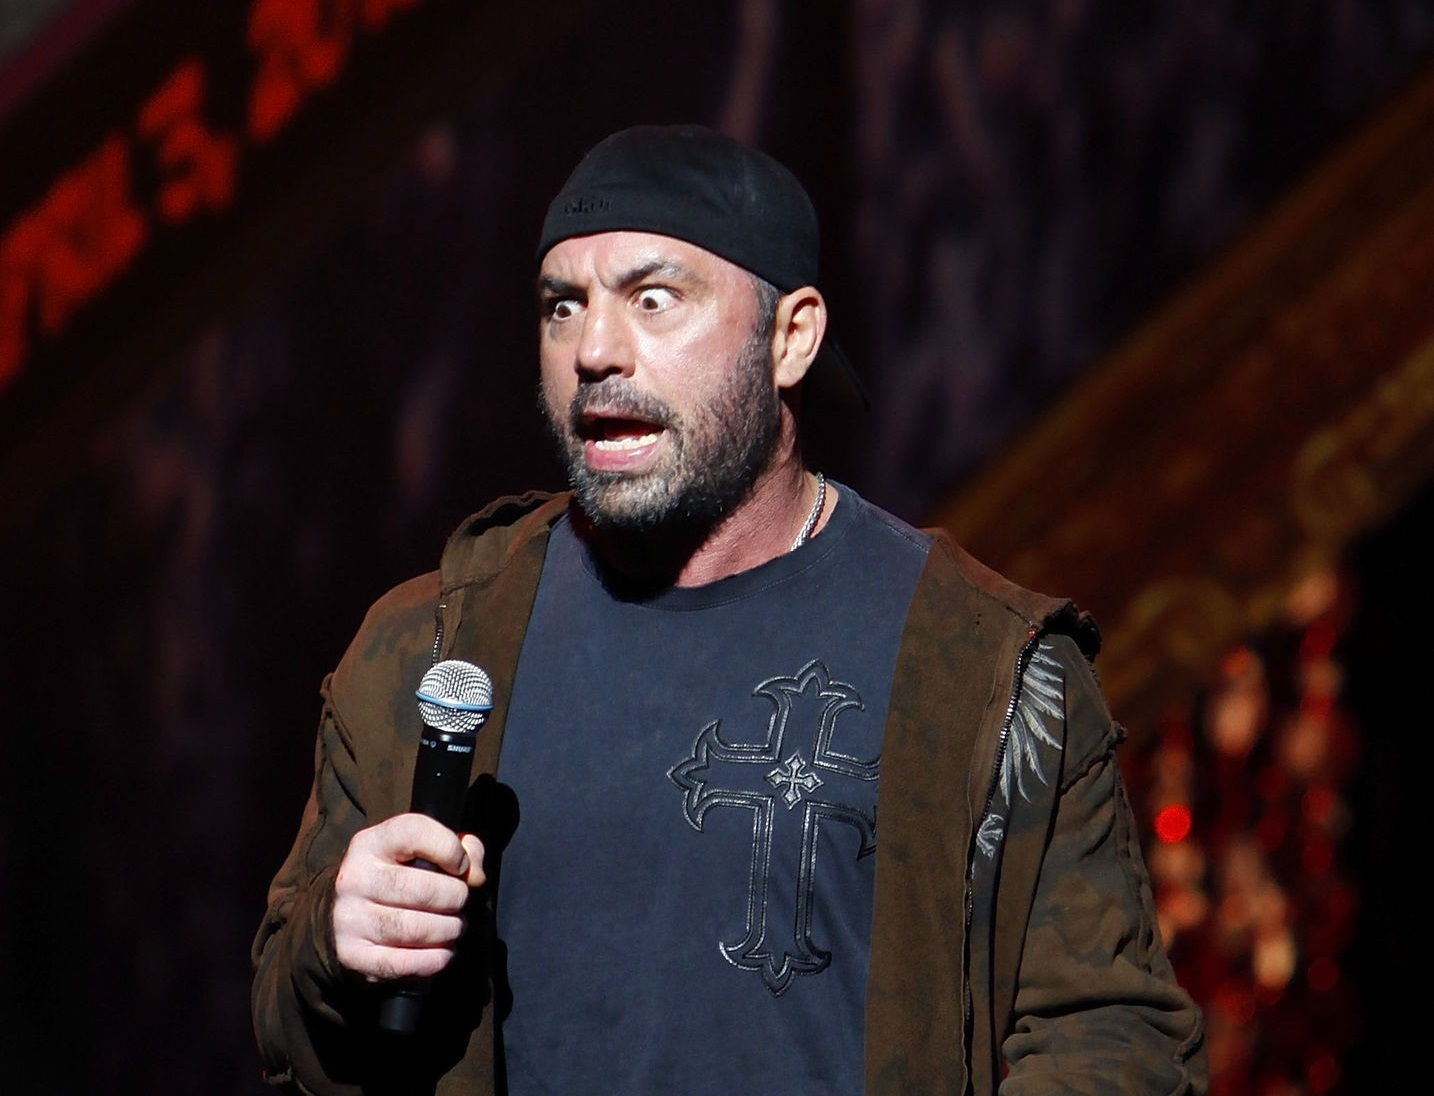 AI generated voice resembles the real voice of Joe Rogan